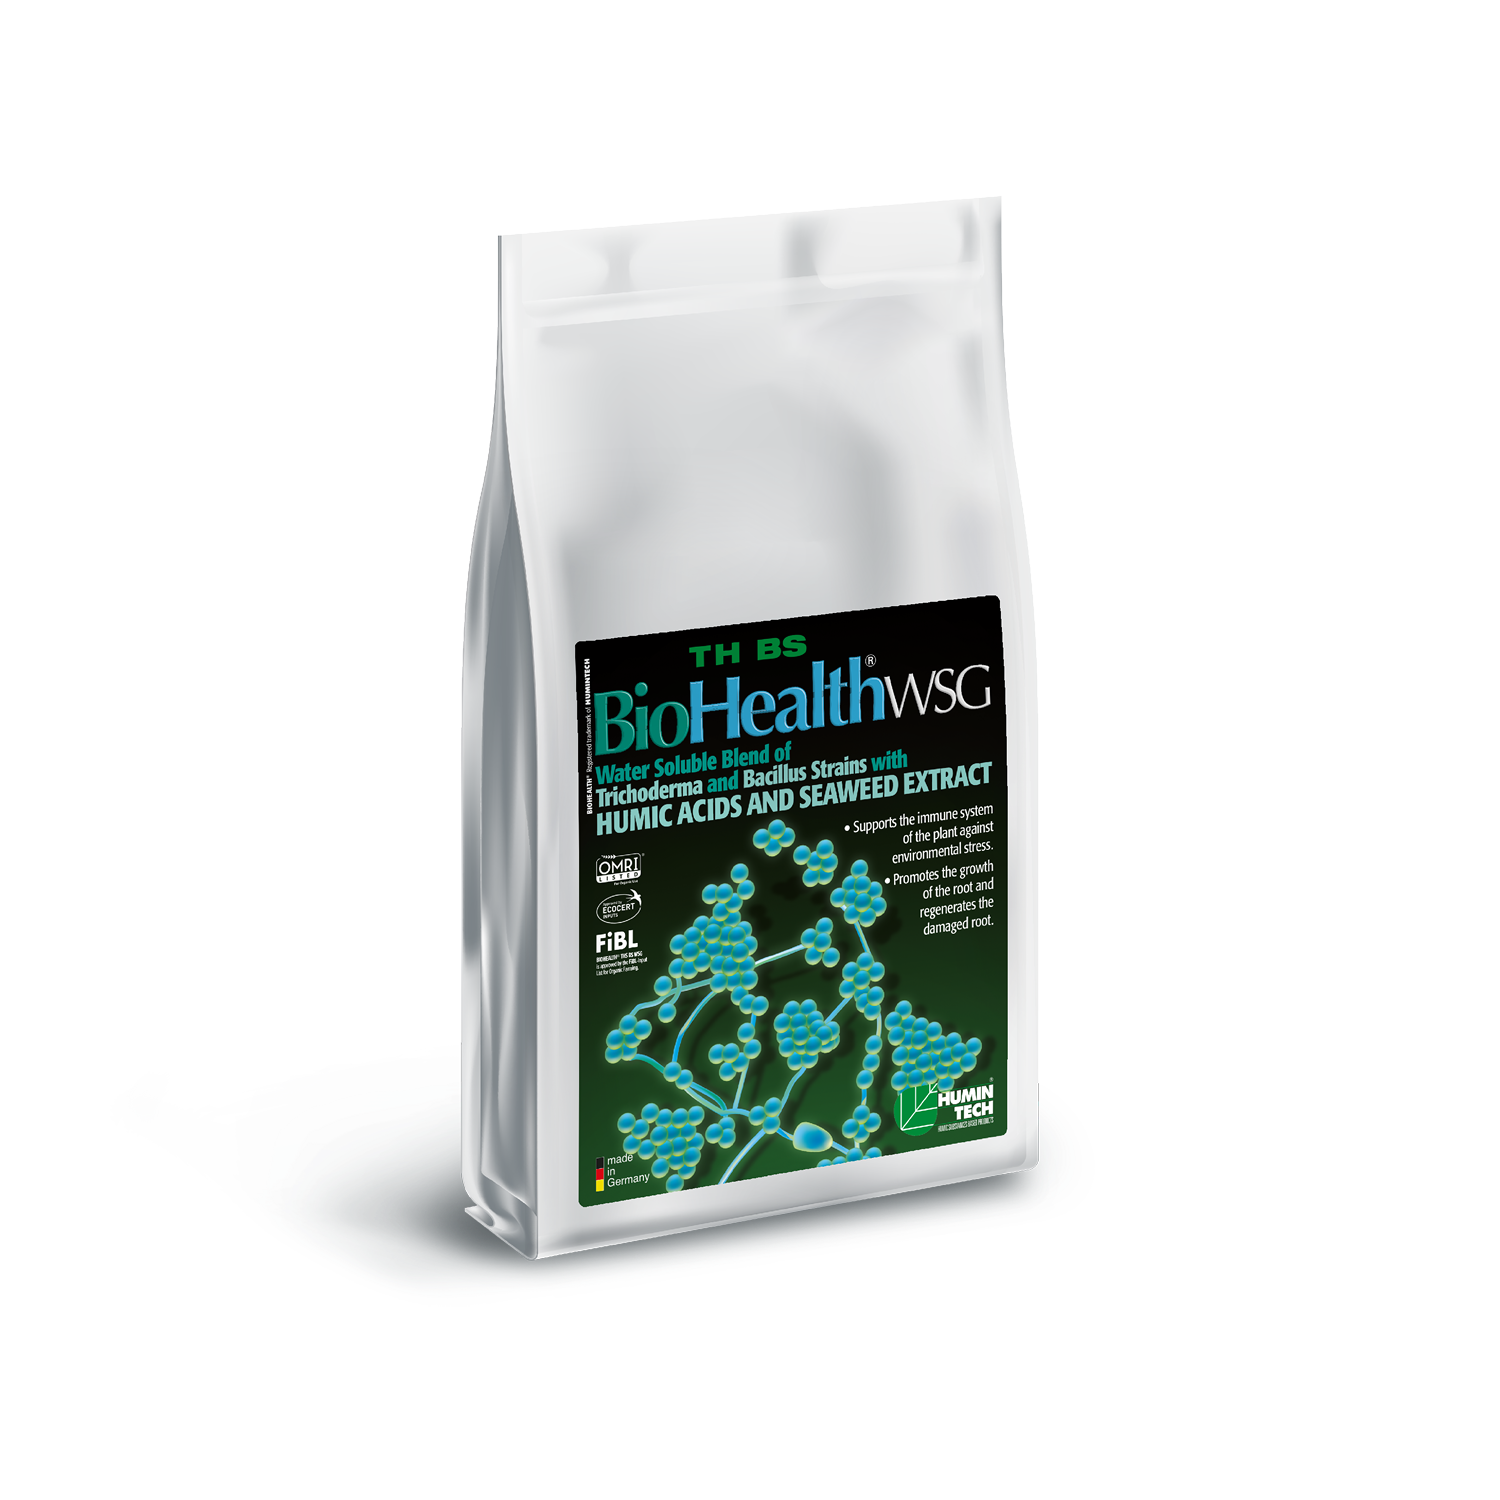 BioHealth TH BS WSG Water Soluble Blend of Trichoderma strains Humic Acids and Seaweed Extract bag